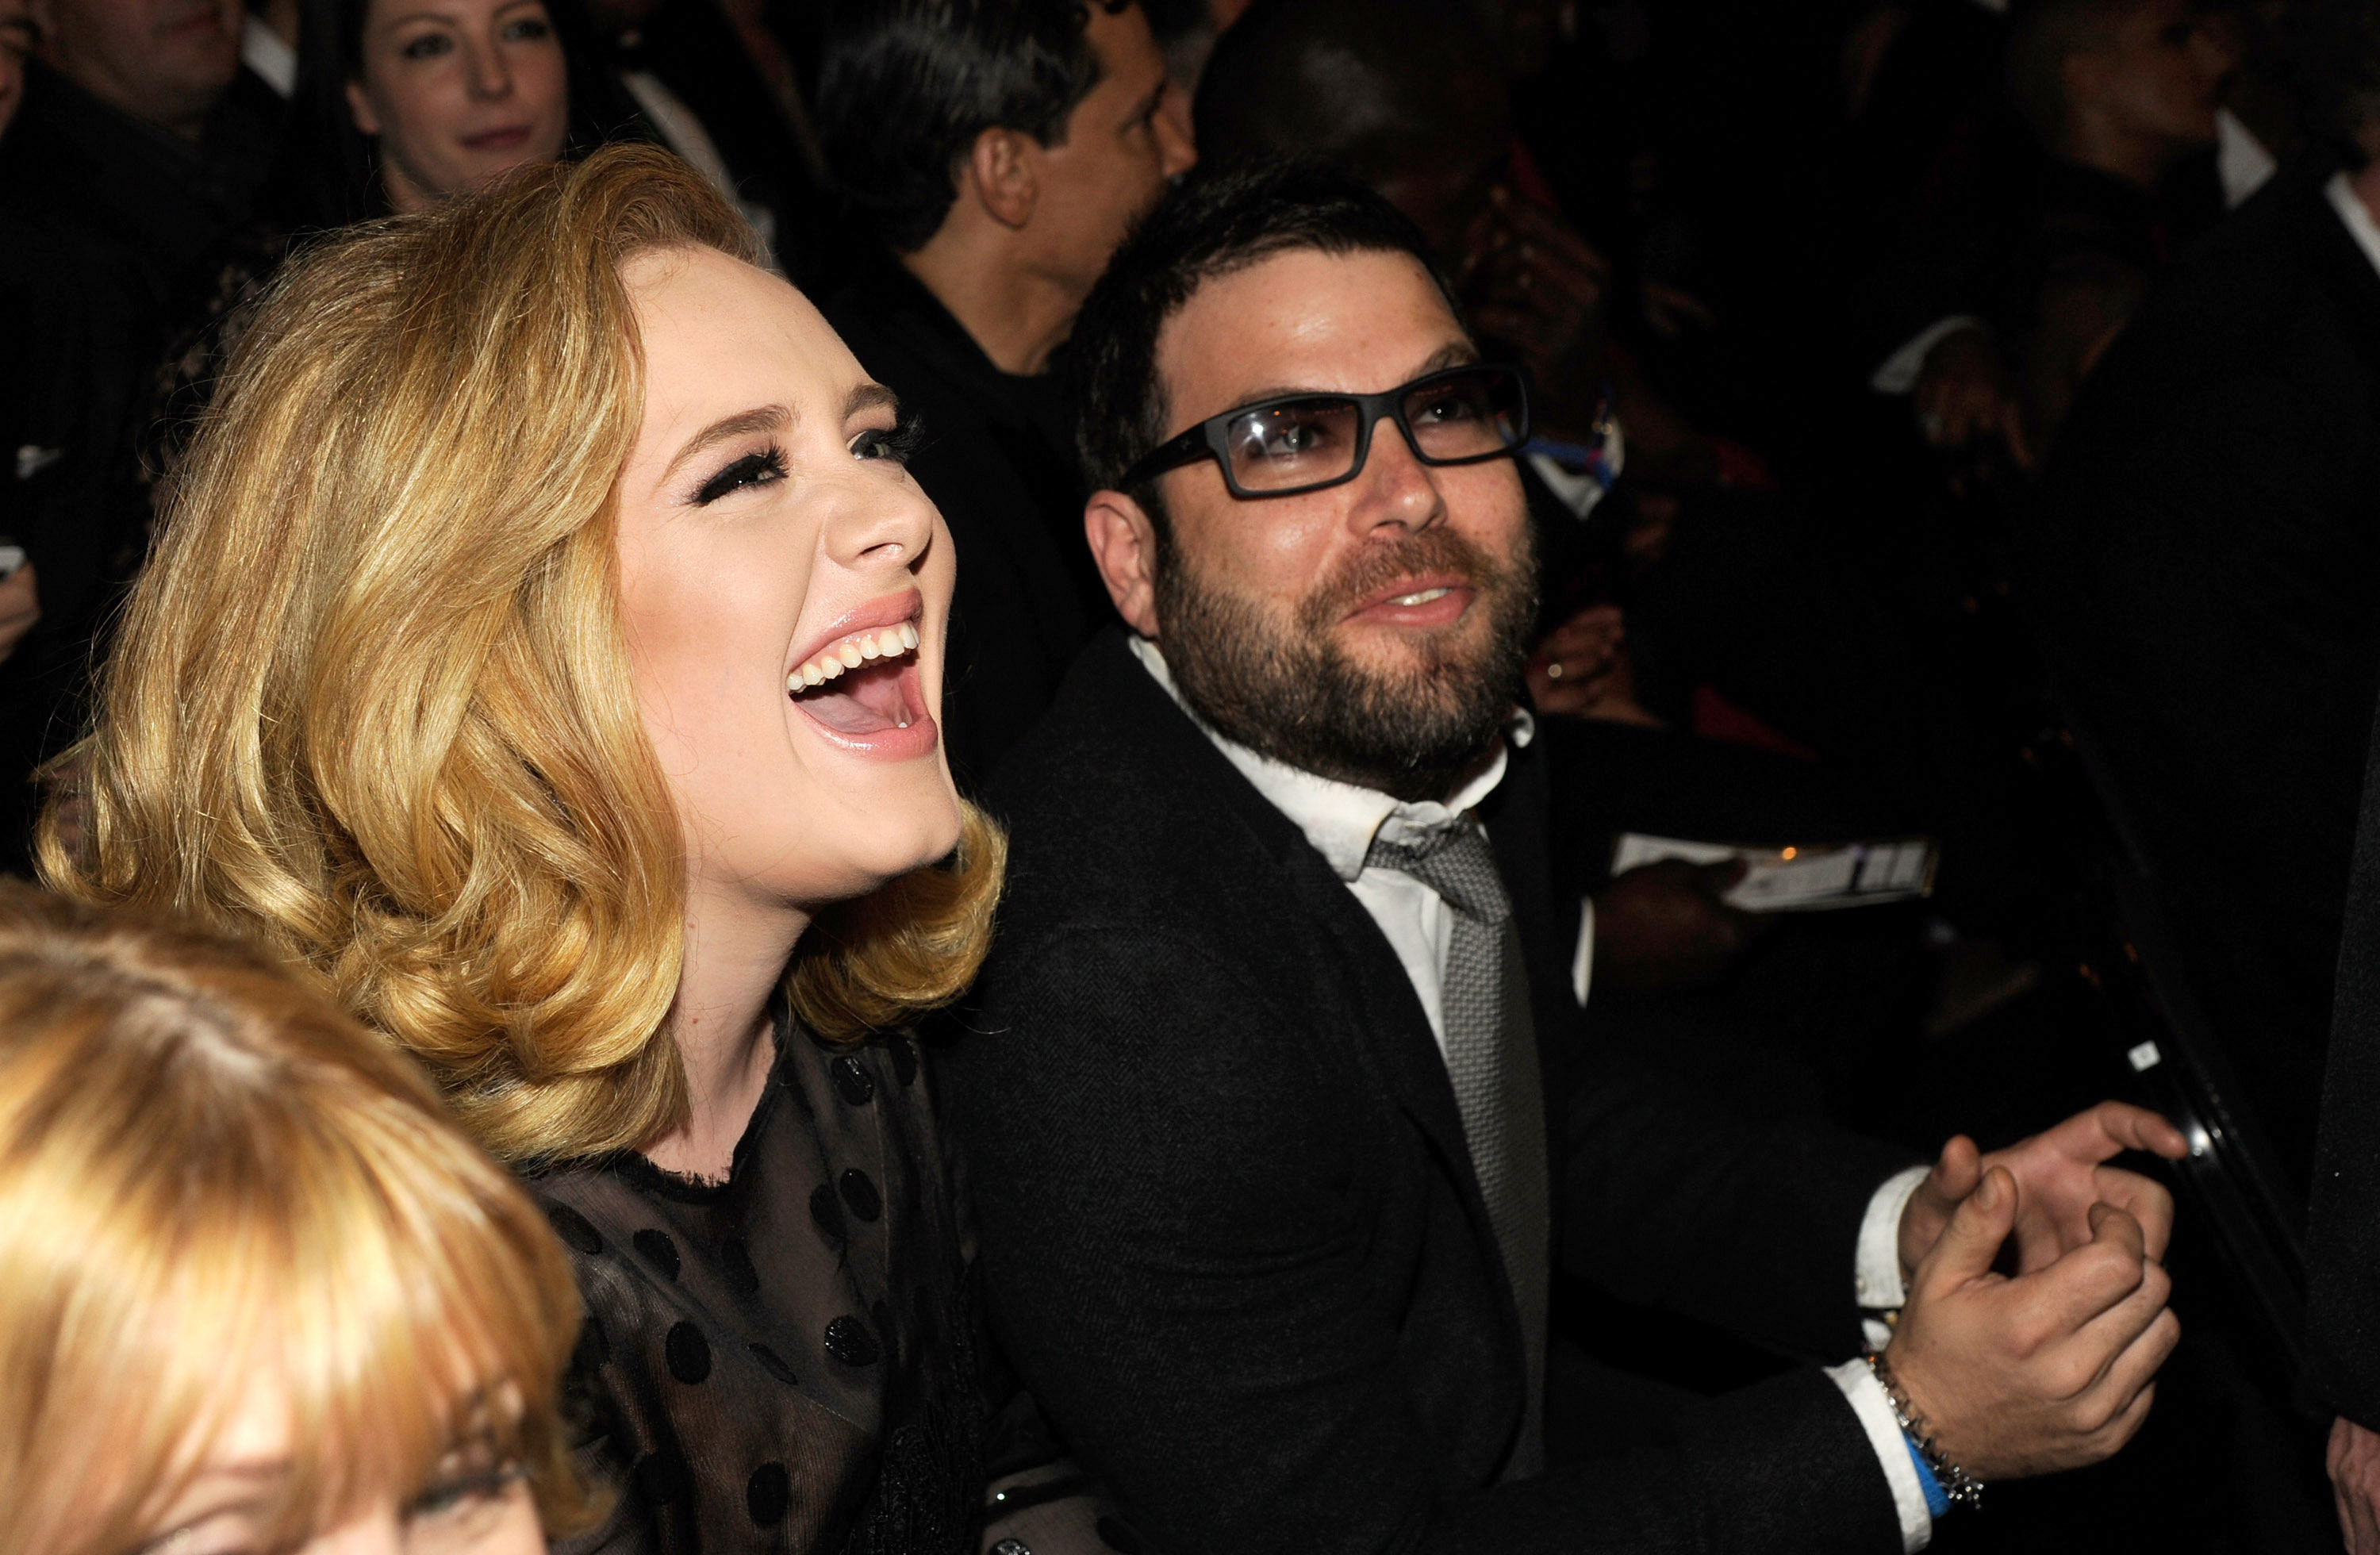 Adele Simon Konecki Relationship Timeline - Adele went public with Konecki around London in January 2012, leading many to suspect they were dating. The singer confirmed the speculation on her website, while simultaneously denying that he was married when they began their courtship.